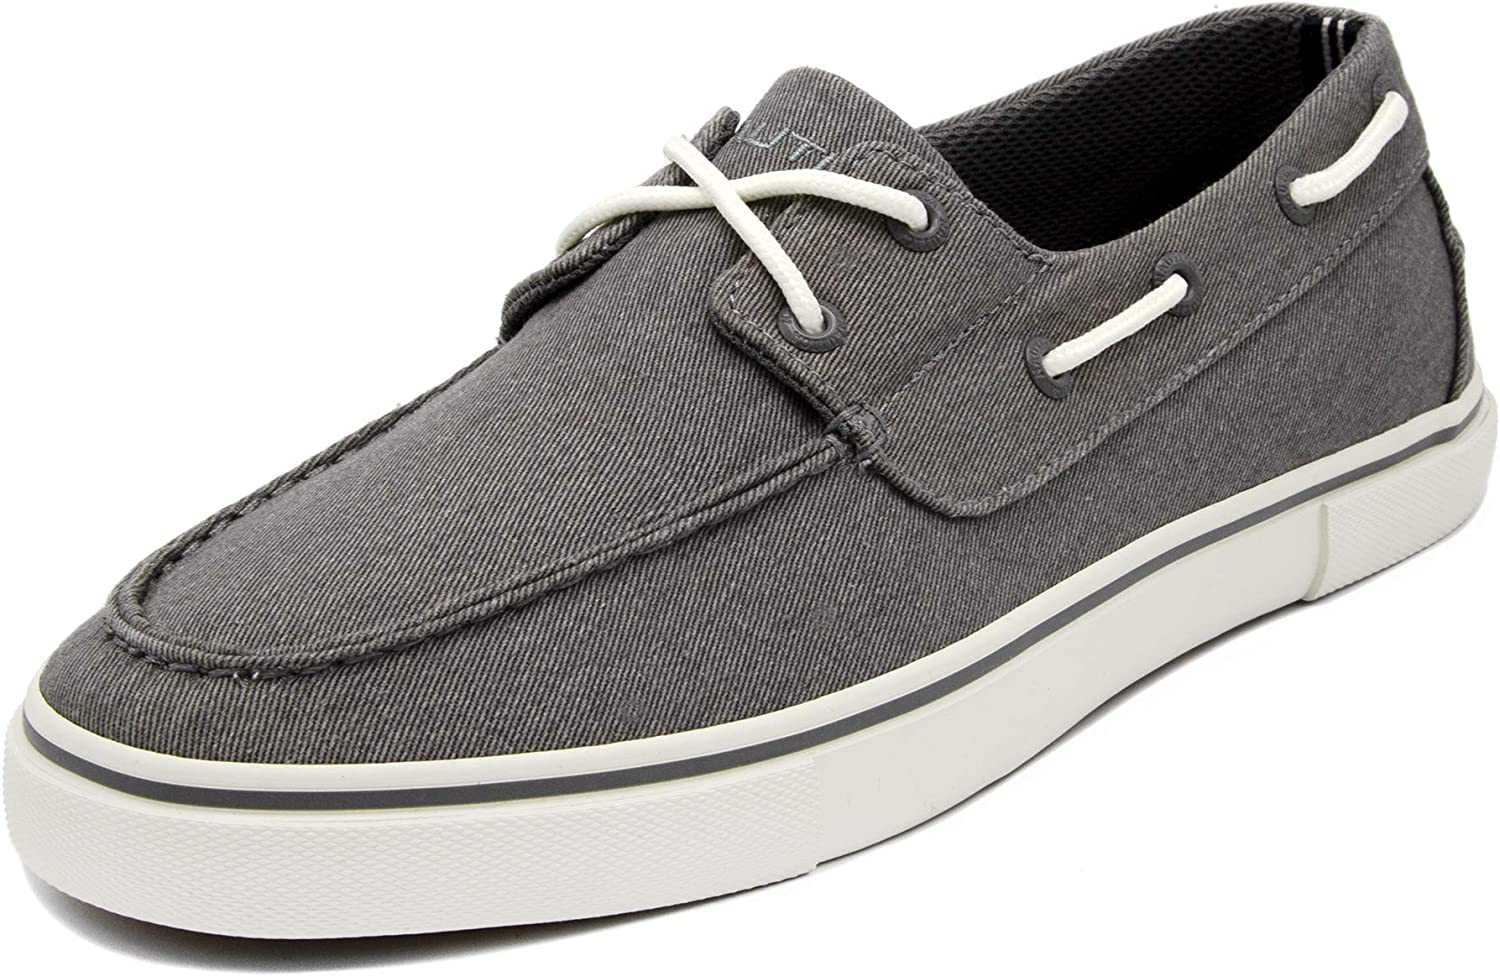 Nautica Men's Galley Lace-Up Boat Shoe,Two-Eyelet Casual Loafer, Fashion Sneaker